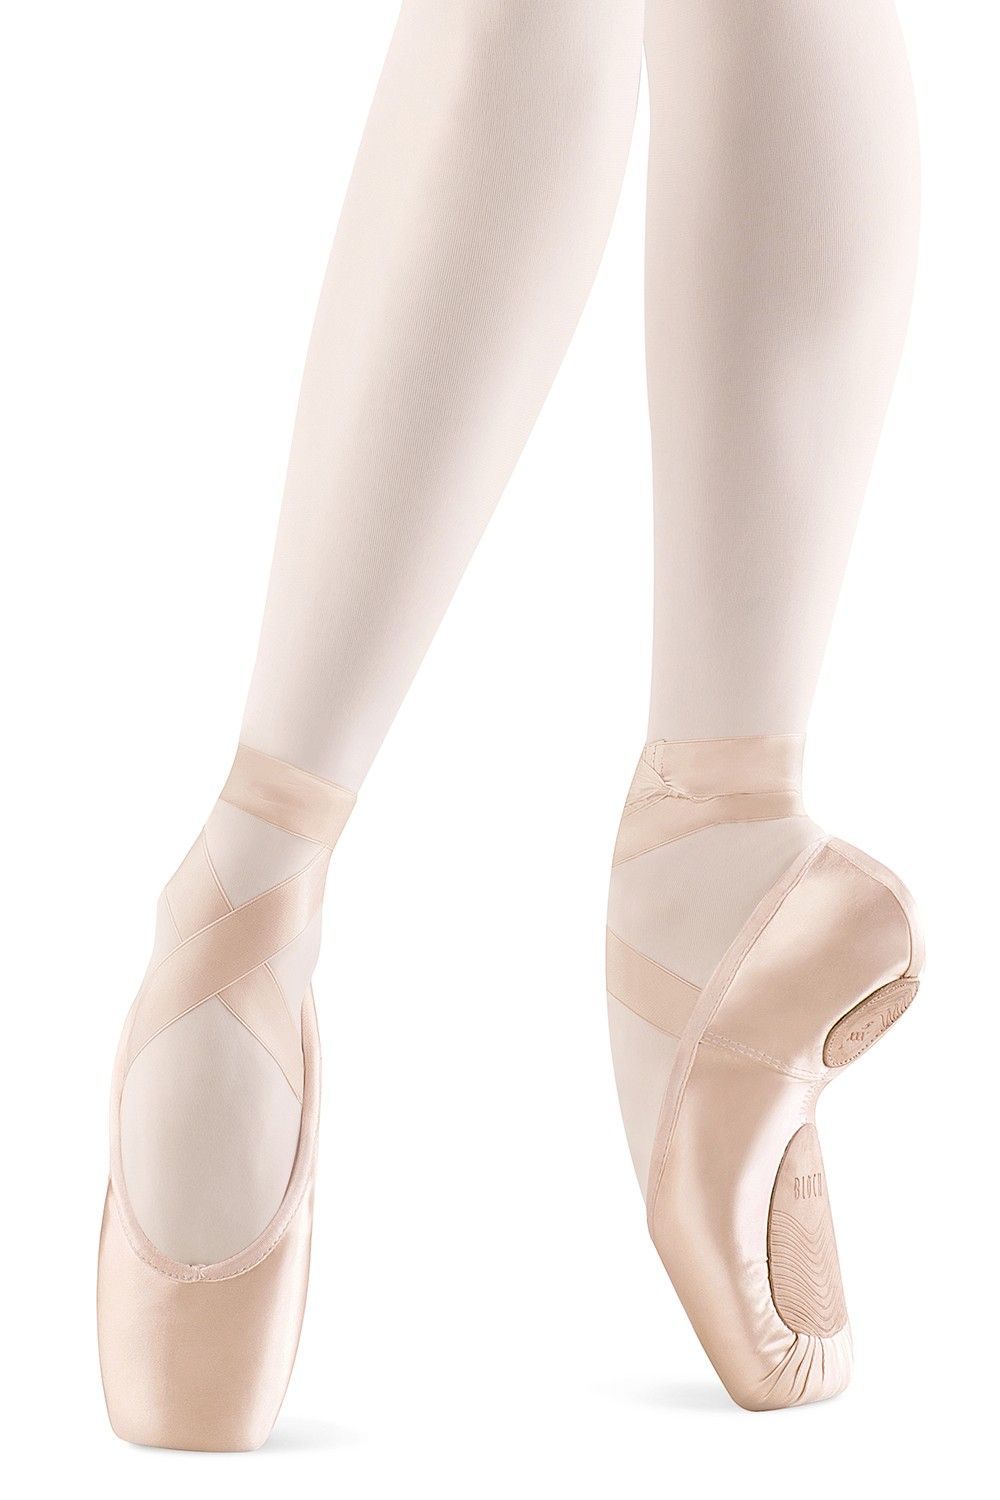 Dramatica Ii - Stretch Pointe Shoe Pointe Shoes